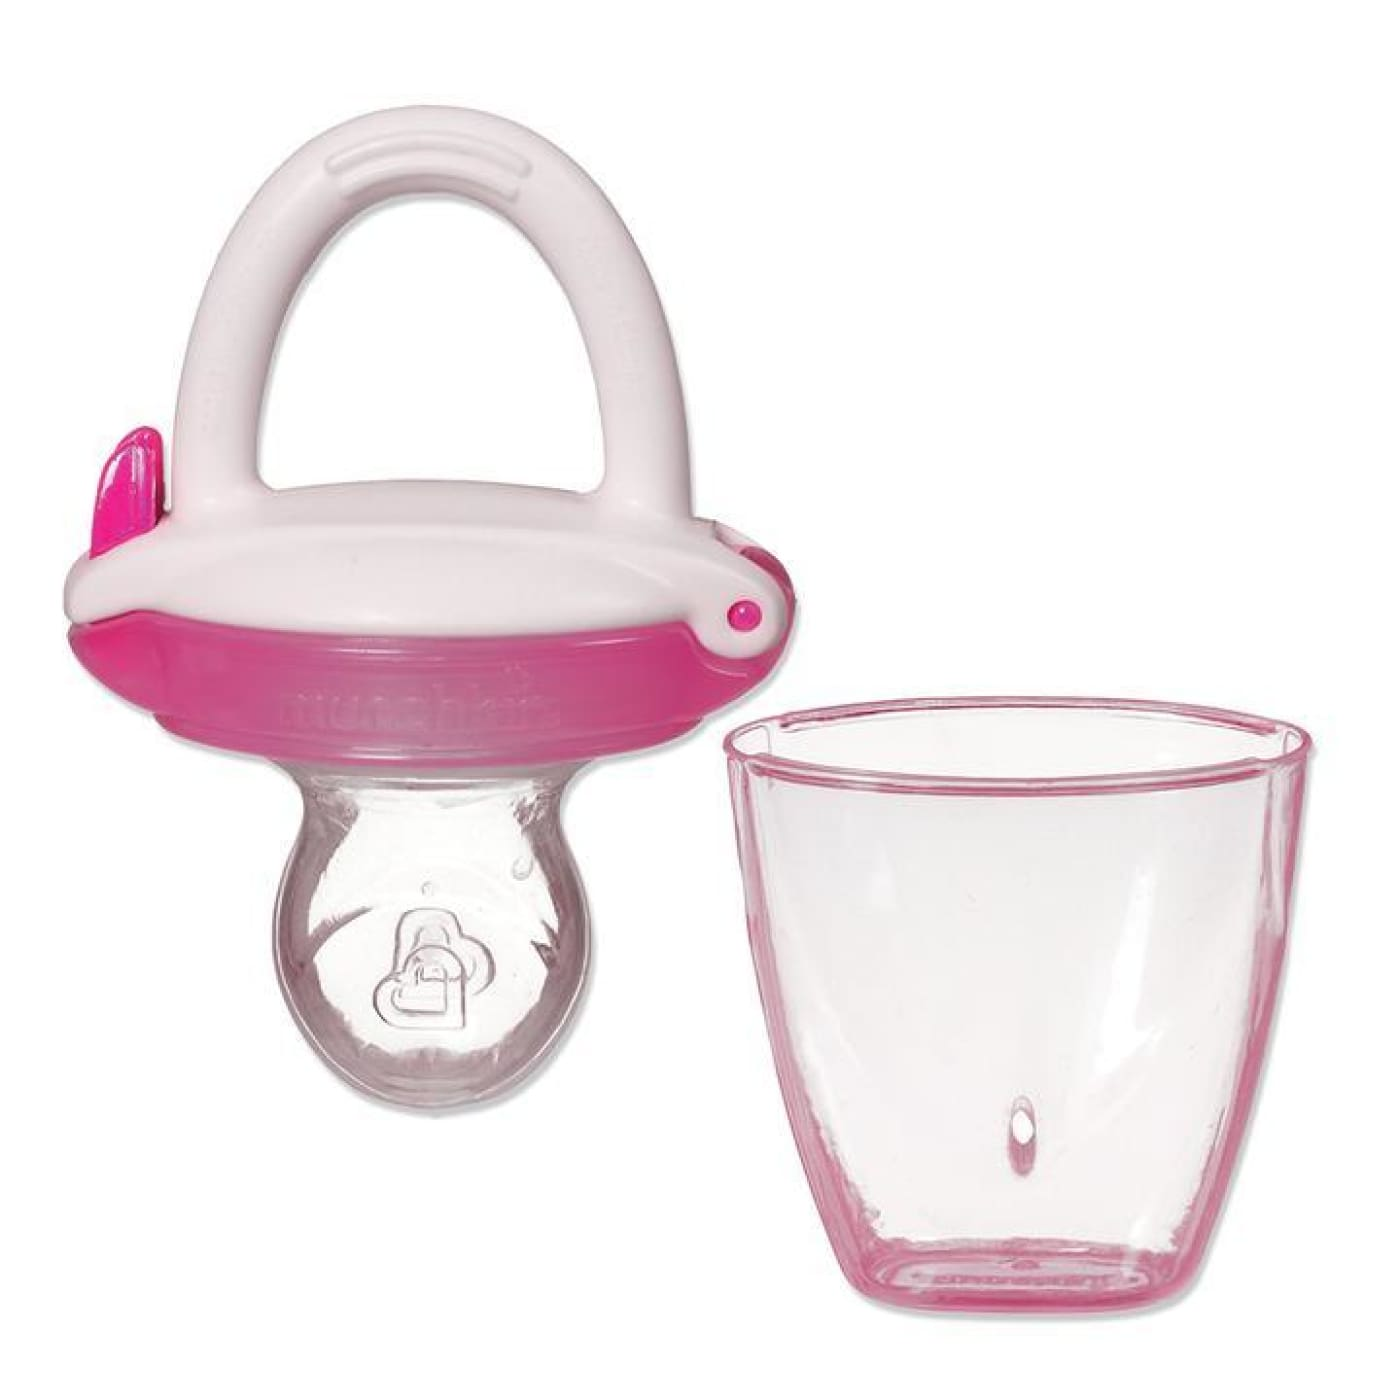 Munchkin Baby Food Feeder - Pink - Pink - NURSING & FEEDING - CONTAINERS/FEEDERS